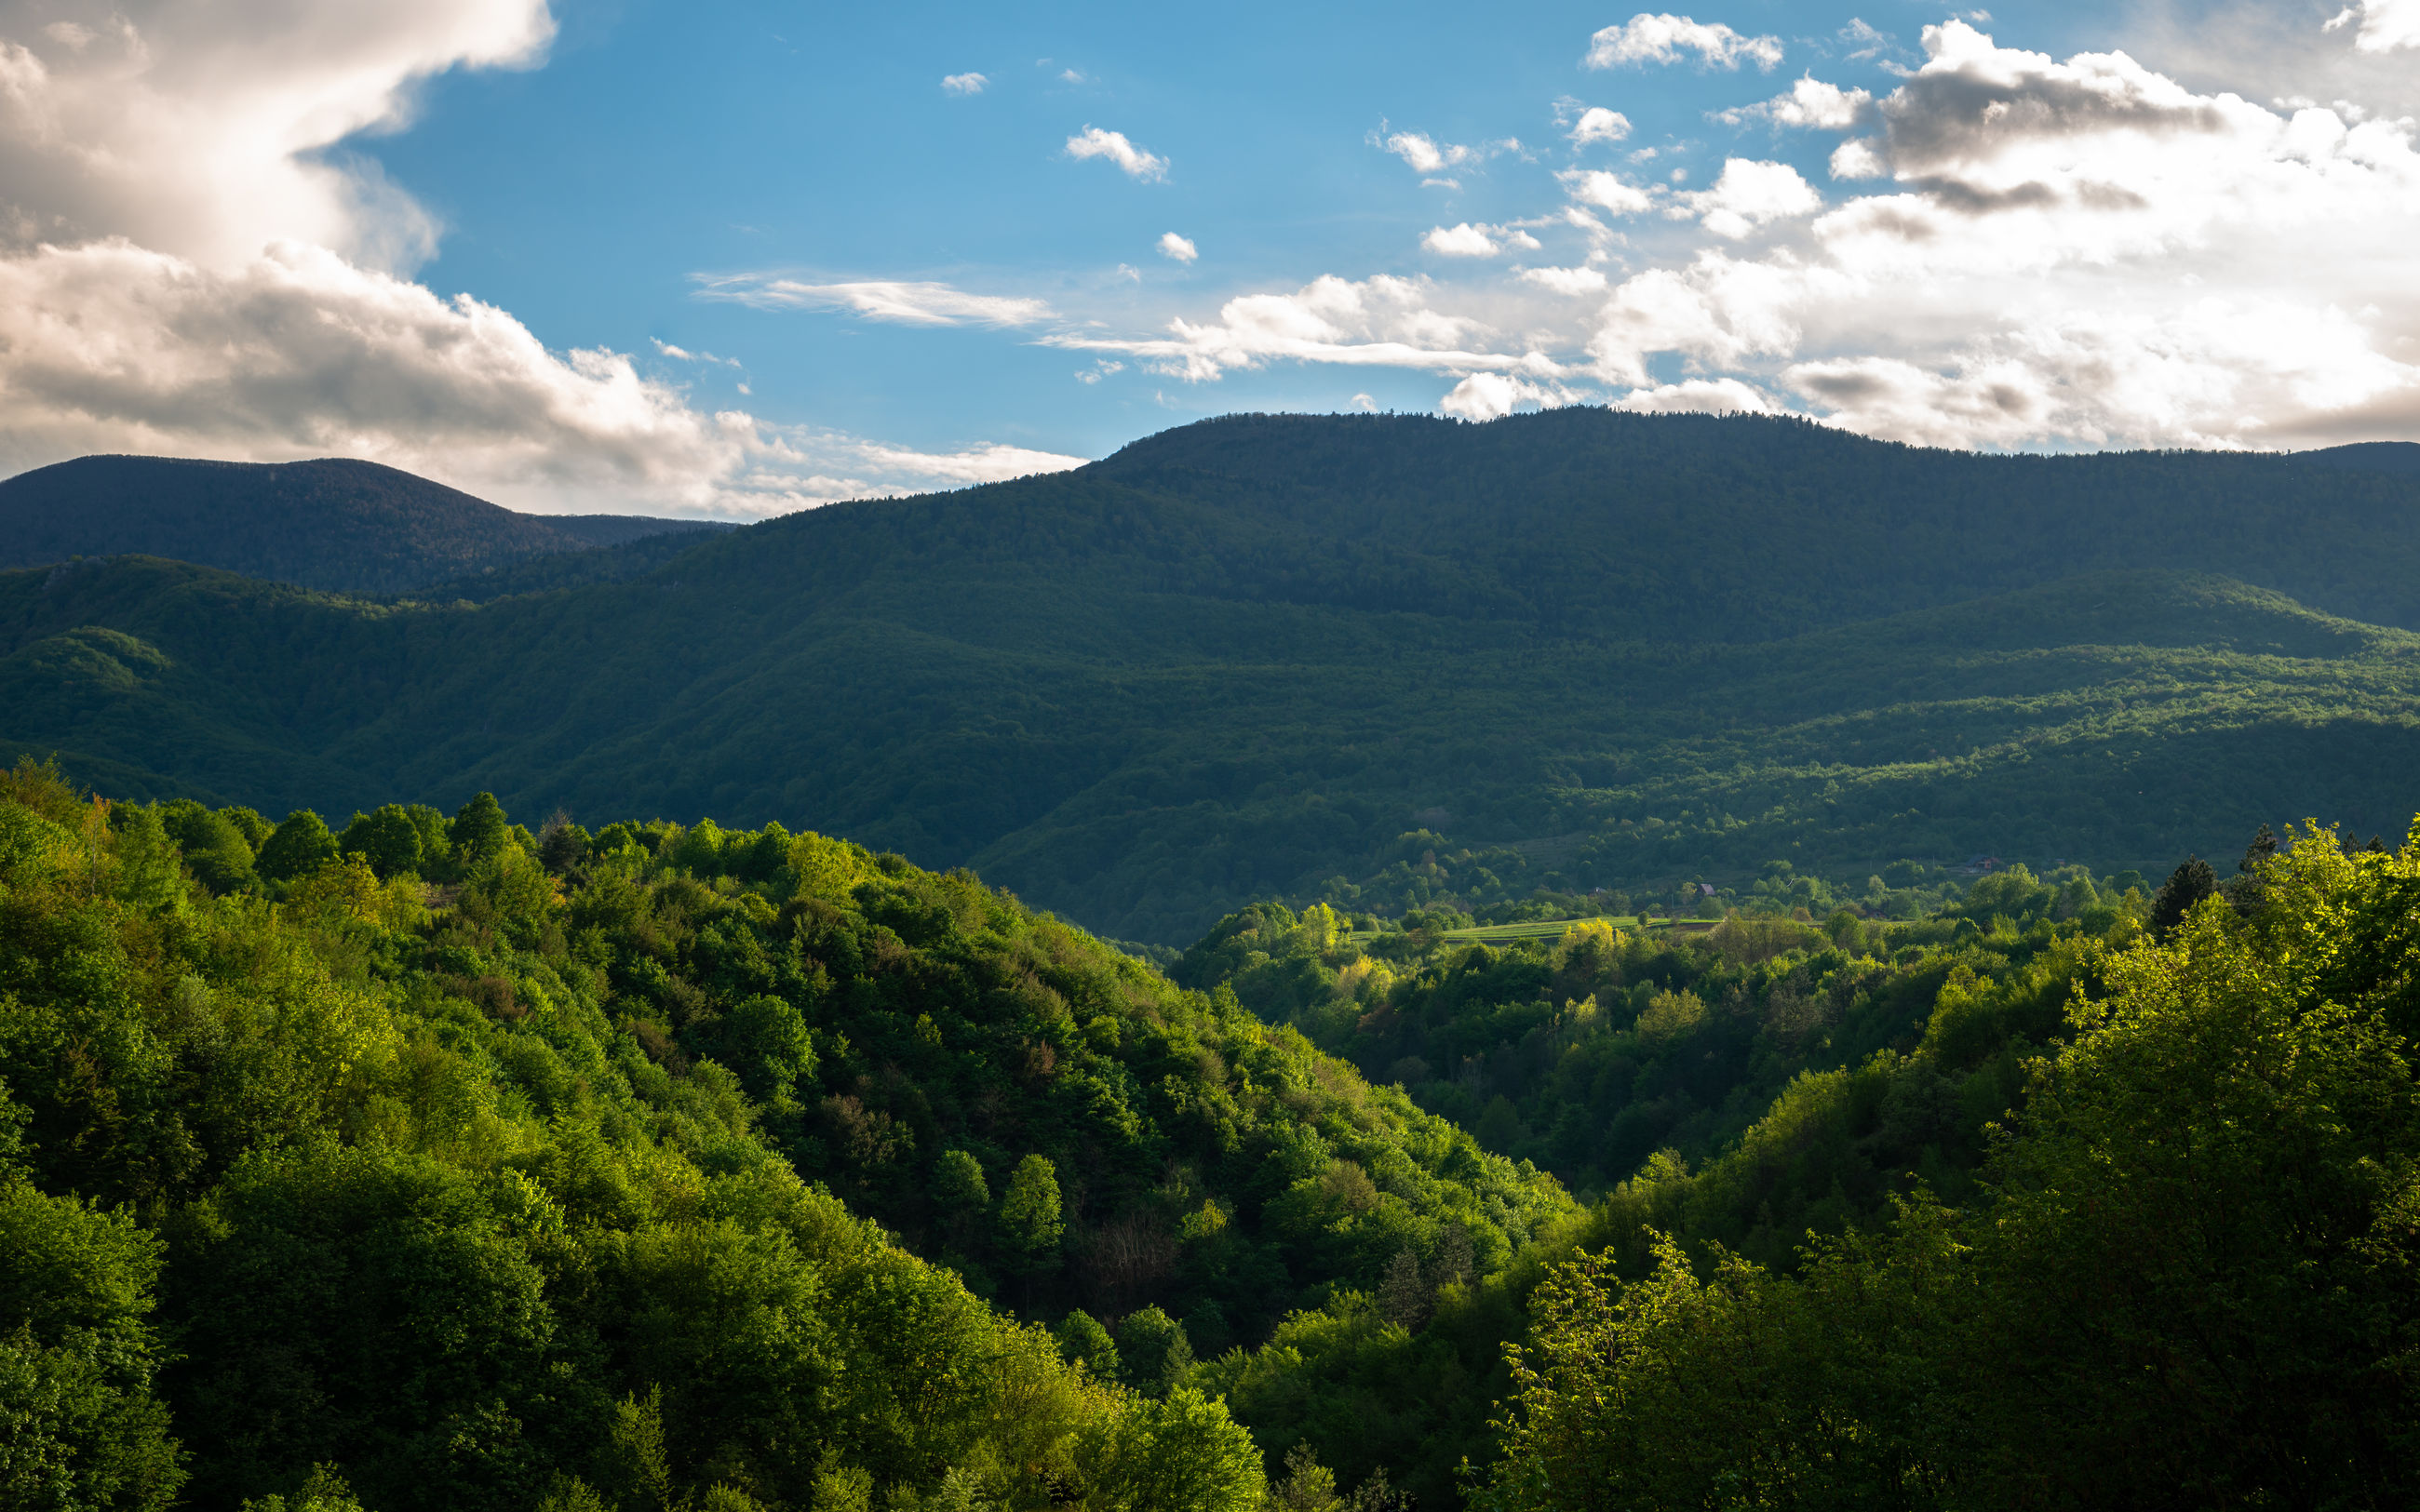 SCENIC VIEW OF GREEN MOUNTAINS AGAINST SKY